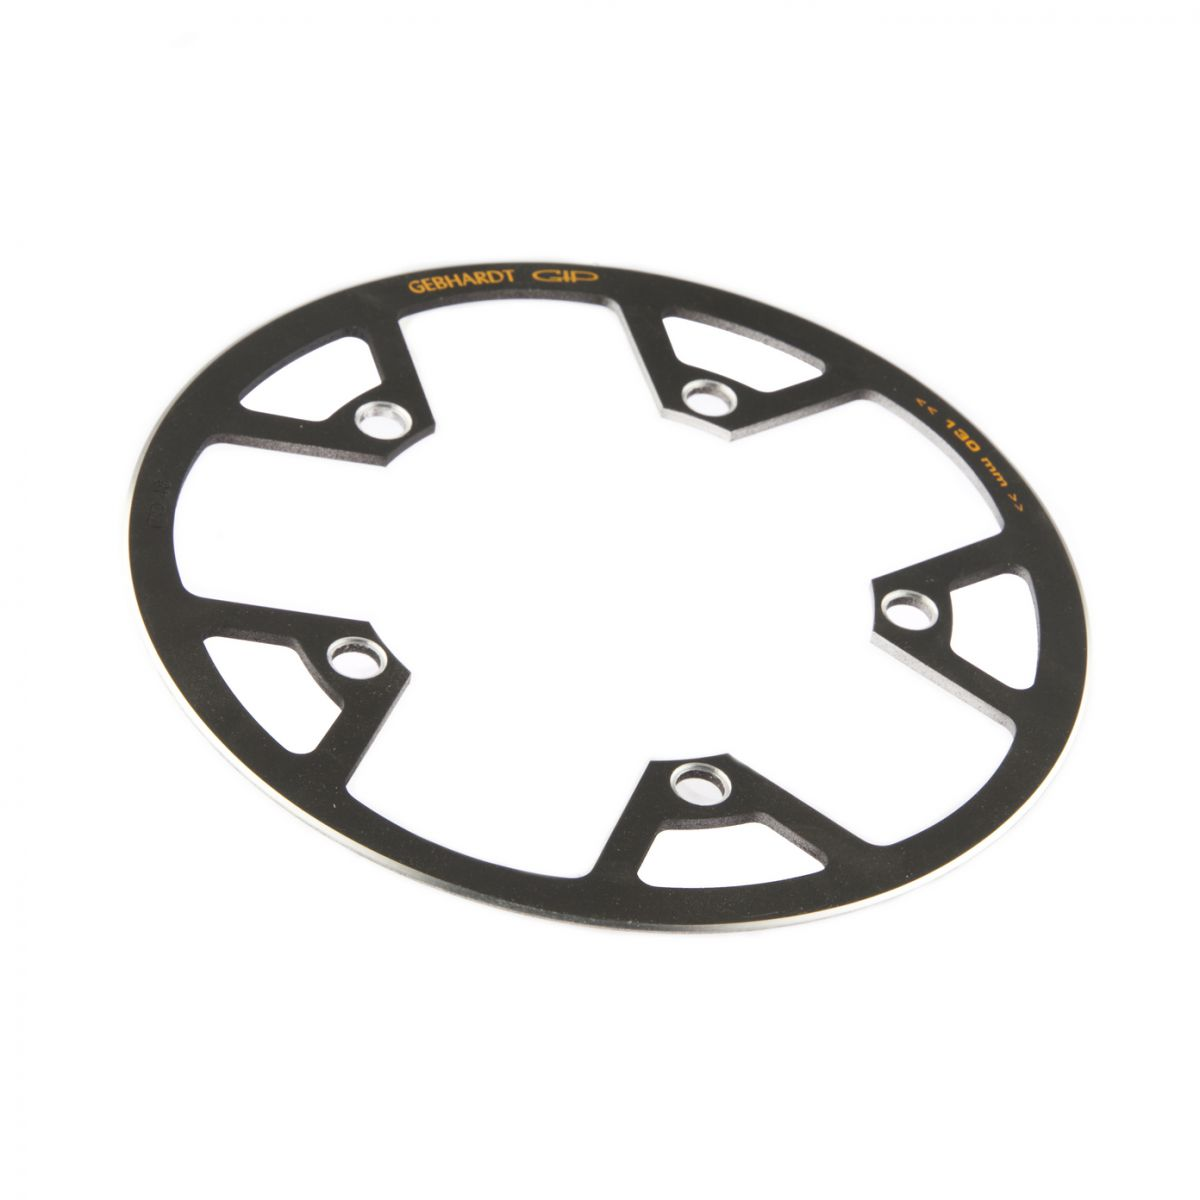 gebhardt chainring cover rock ring classic bcd 135 mm 5hole 42t black